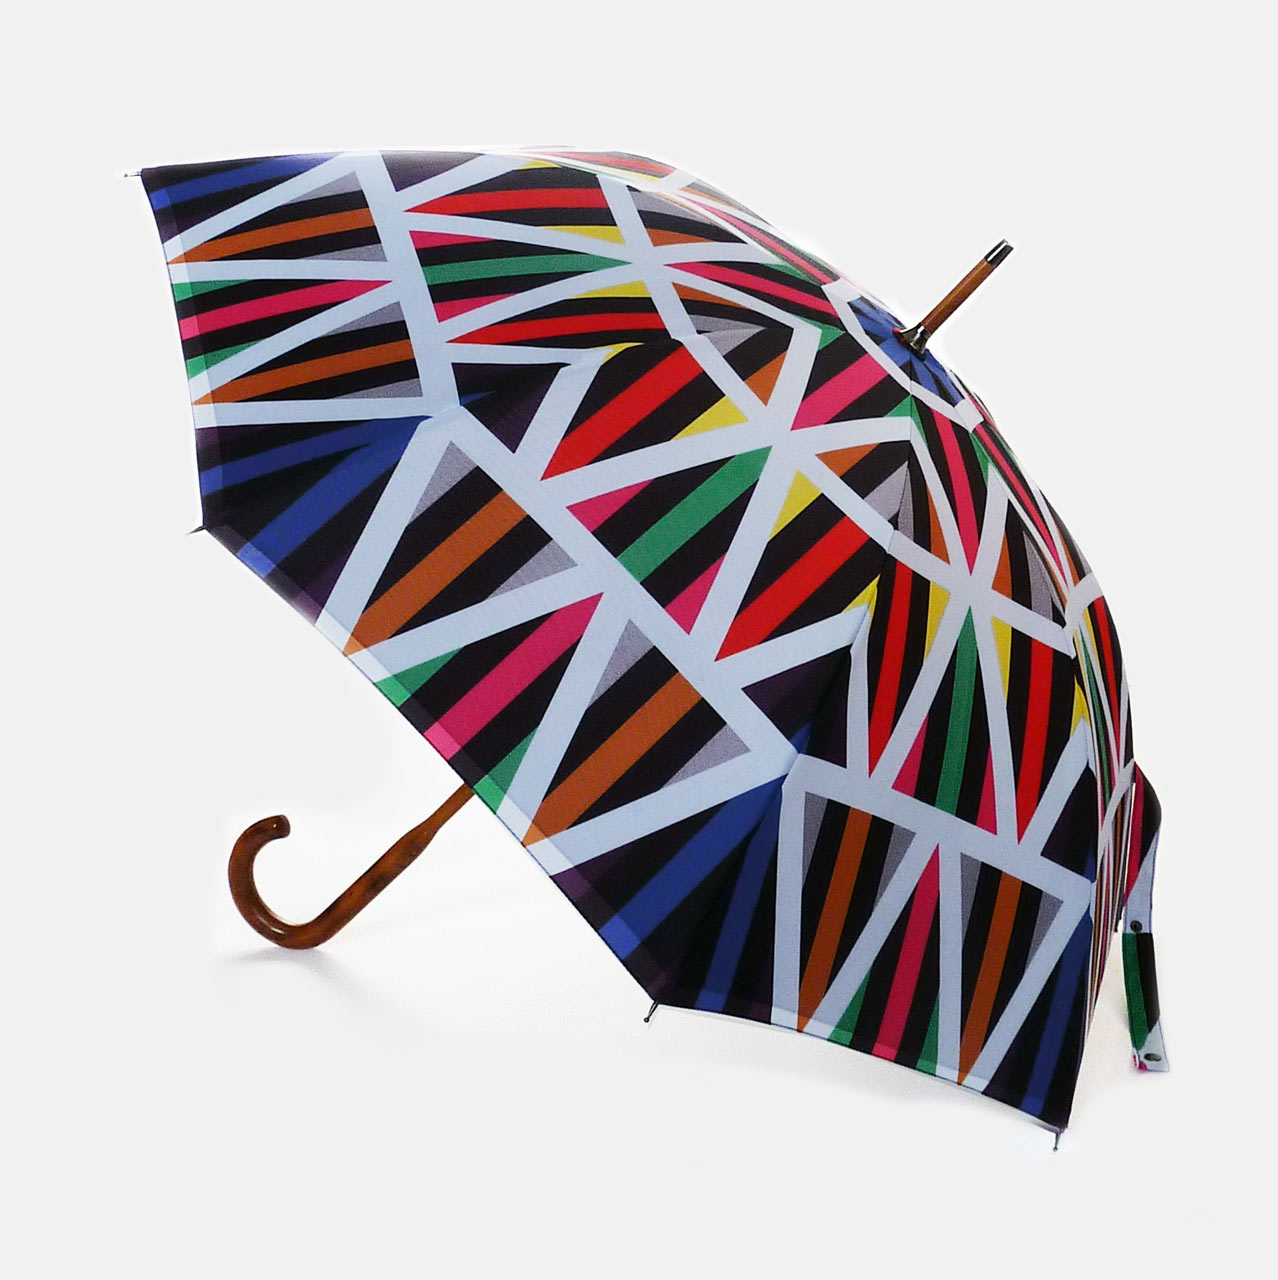 Walking Stick Umbrellas from David David